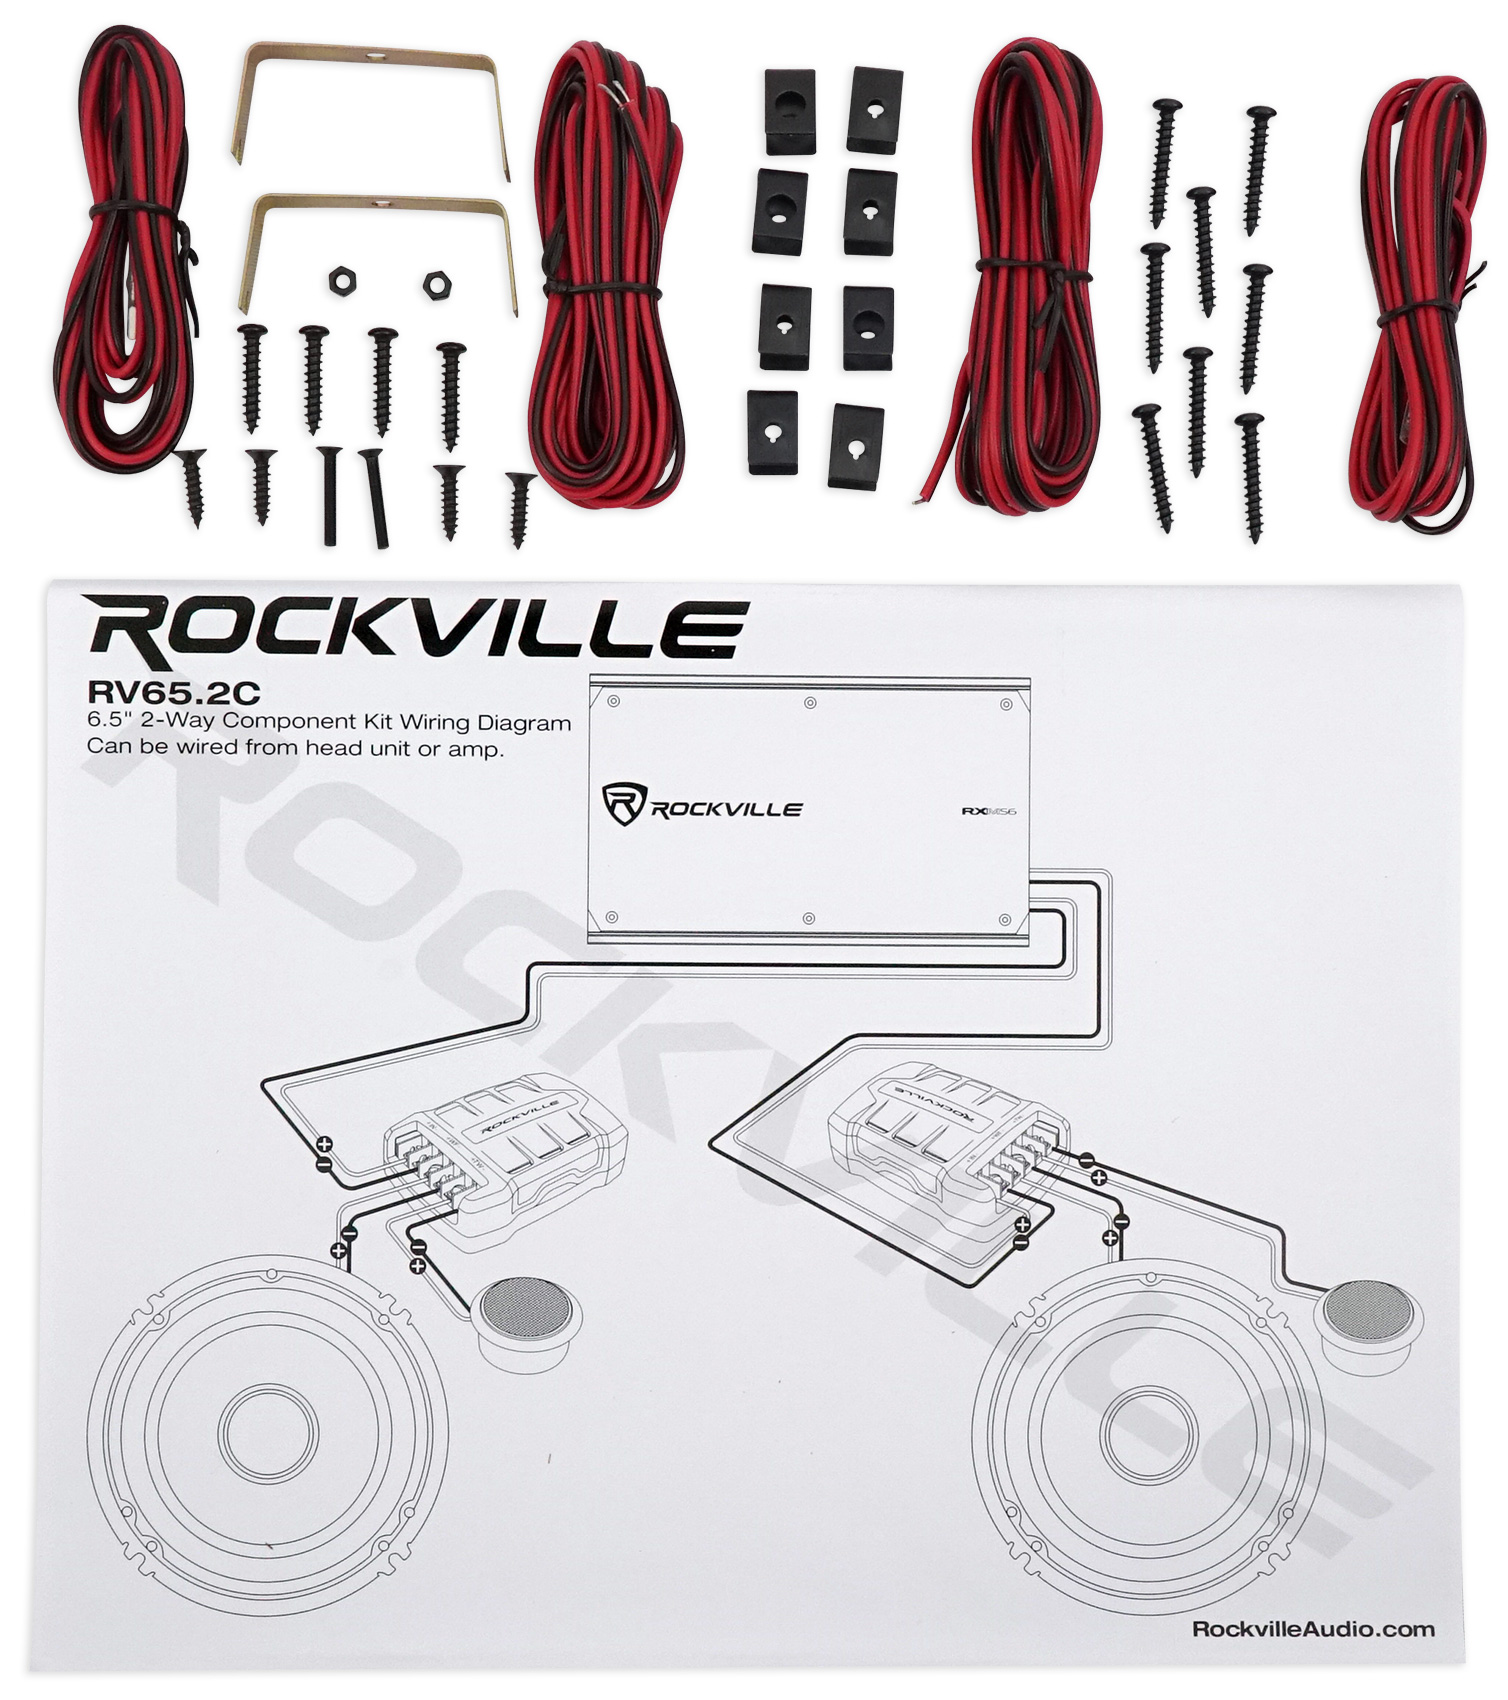 Rockville Wiring Diagrams Schematics 2000 Pontiac Montana Engine Diagram 3400 Or3 4l Rxh F5 Amplifier Car Stereo Amp Wire Kits Cable Component Rh Walmart Com Symbols